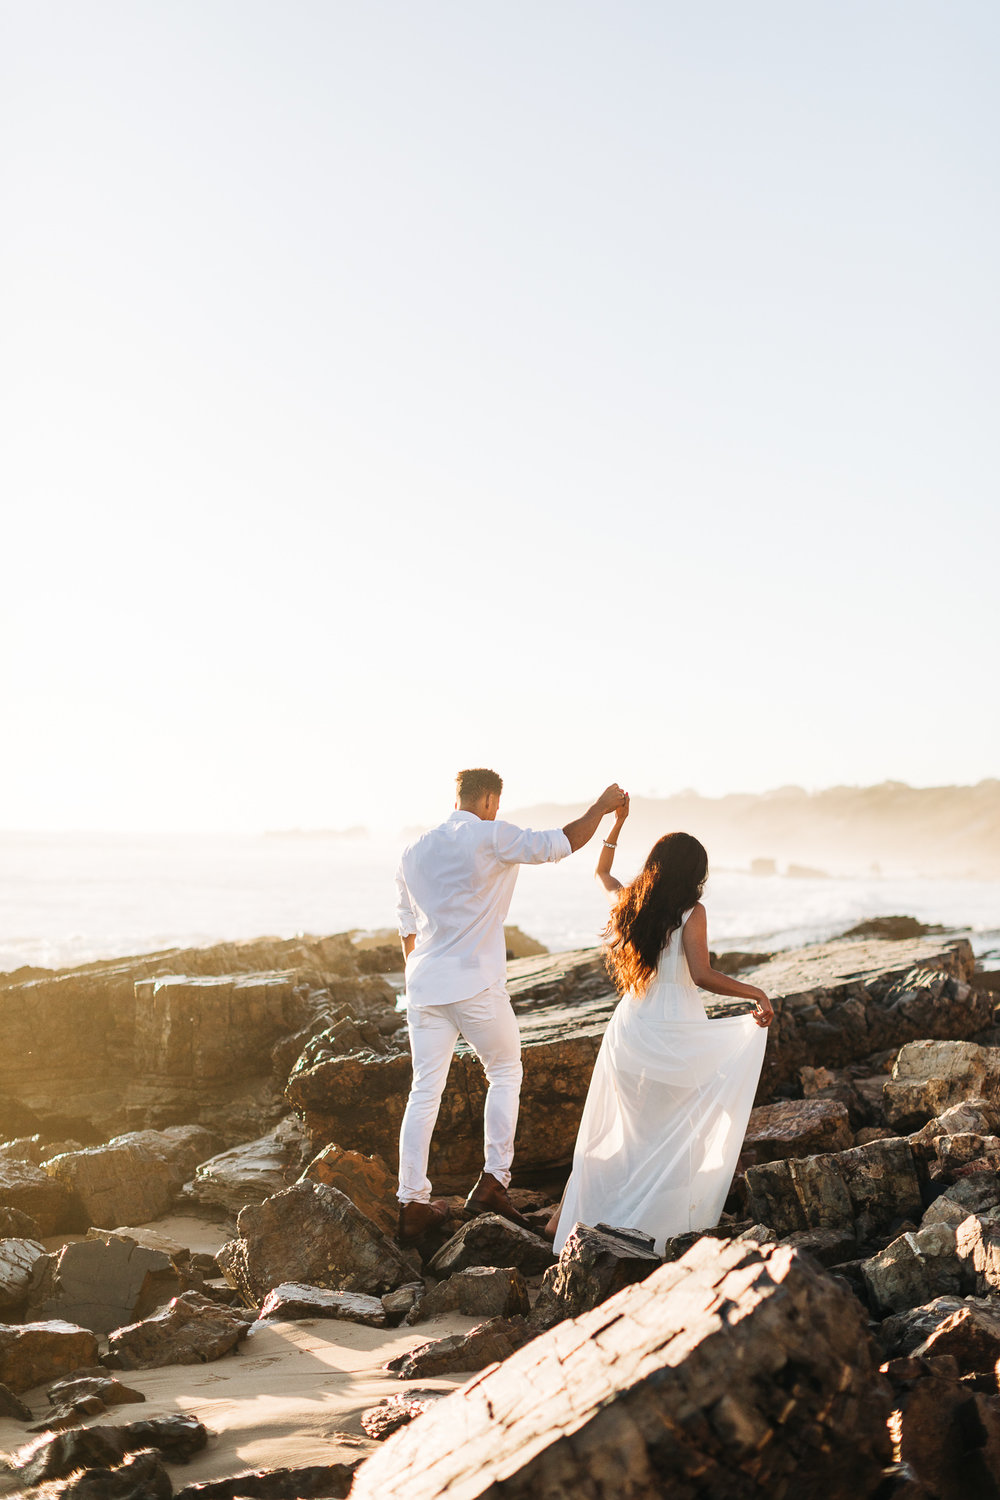 Nanis&Jay-Crystal-Cove-Beach-Engagement-Session-Clarisse-Rae-Photo-&-Video-Orange-County-Wedding-Photographer-&-Videographer_30